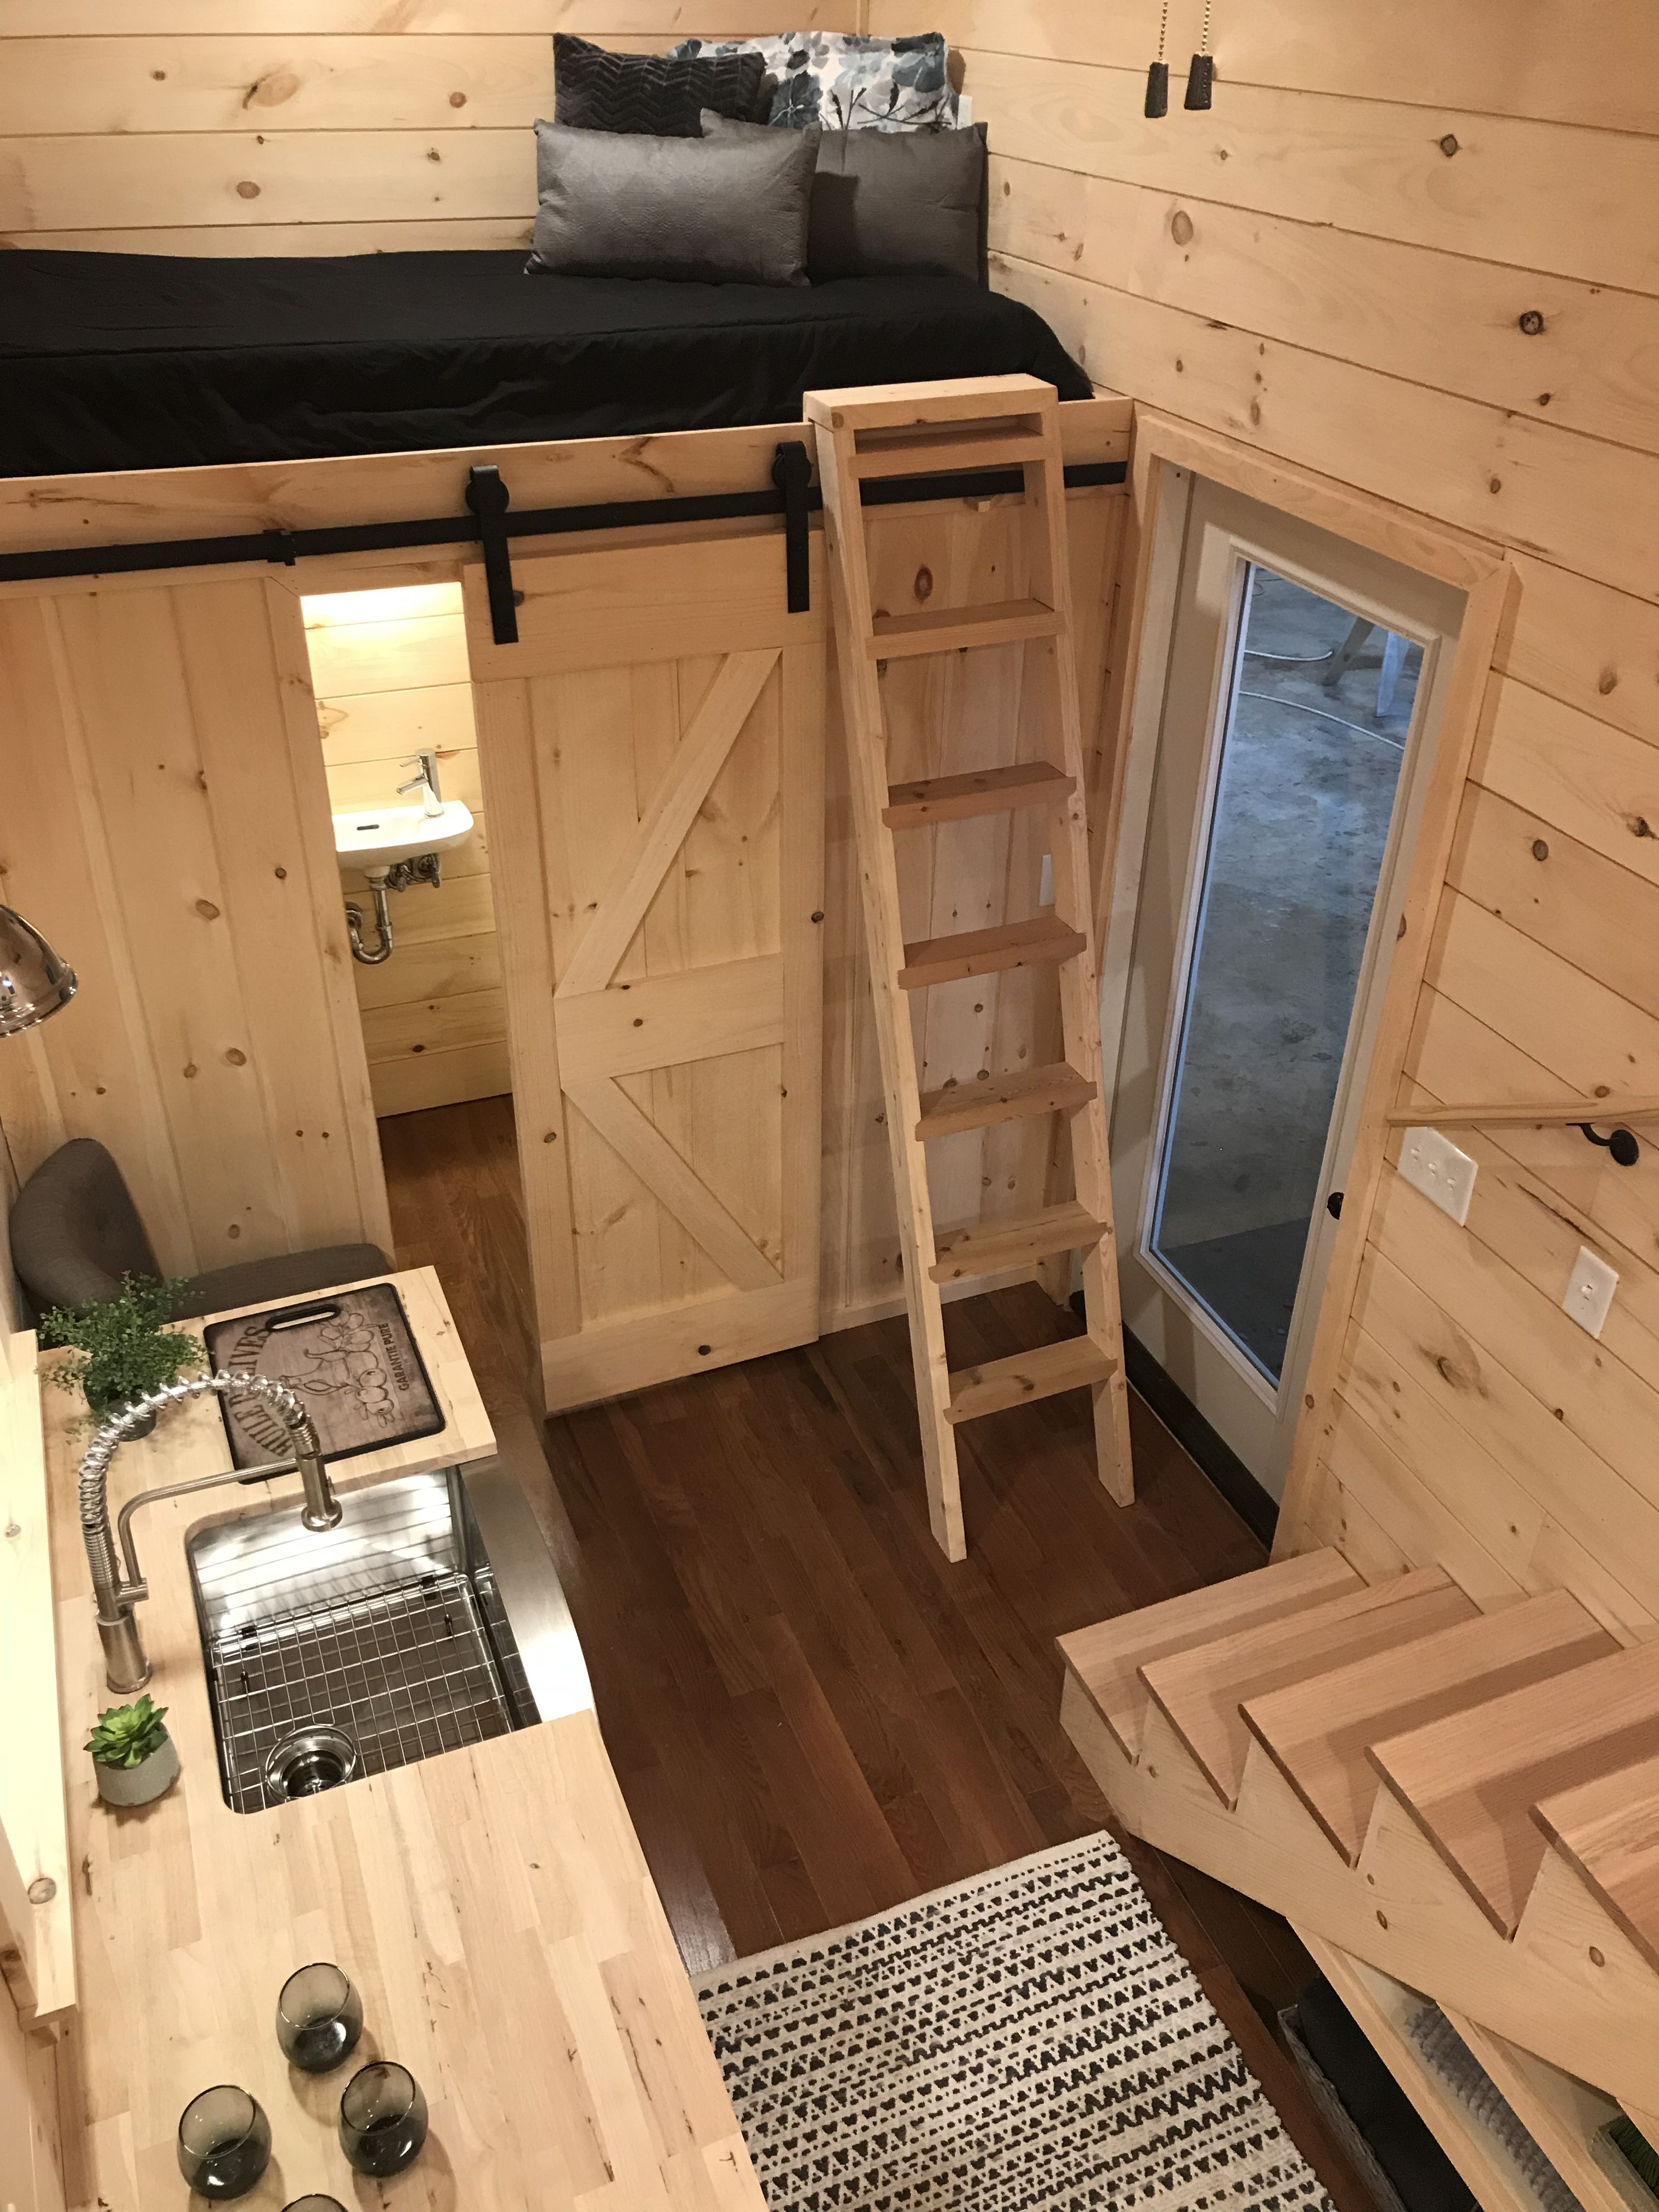 Sweet Dream Is An 8 X 22 Incredible Tiny Home With A